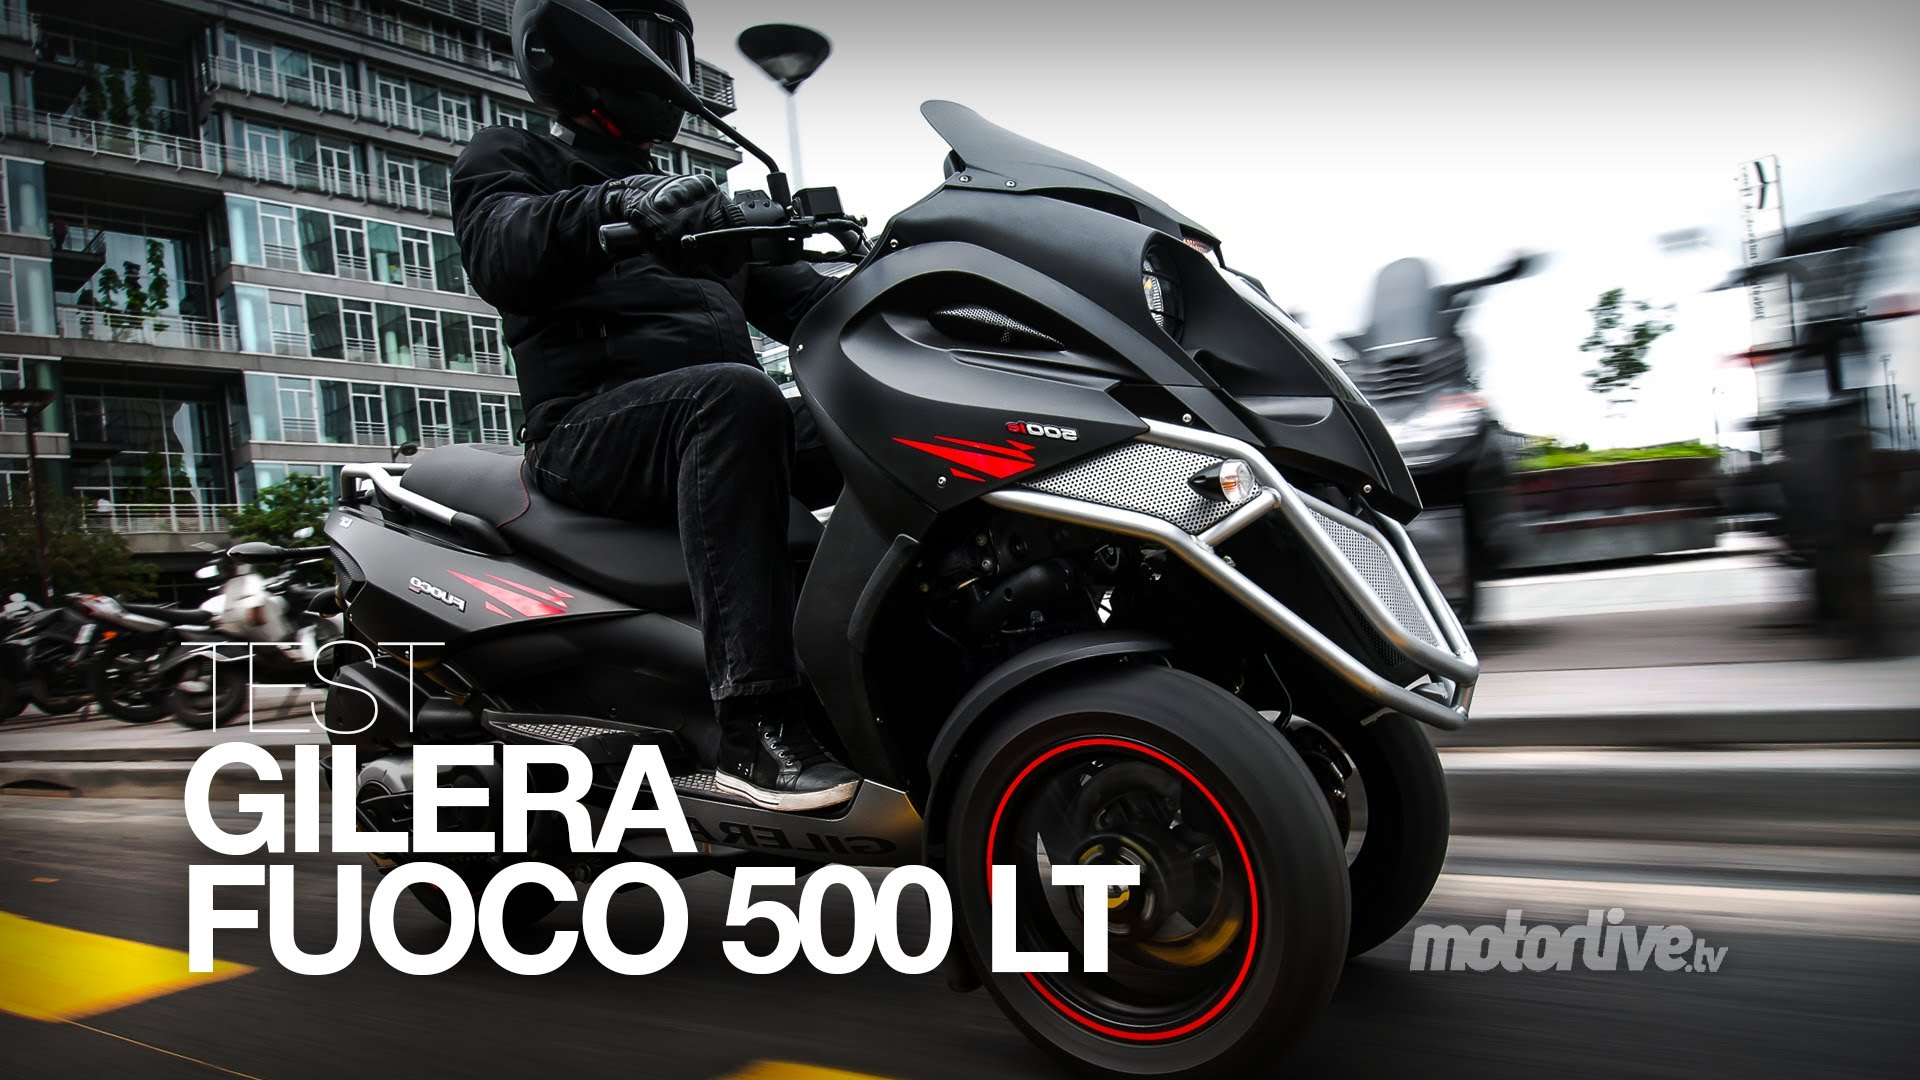 Gilera Fuoco 500 ie 2008 images #74156